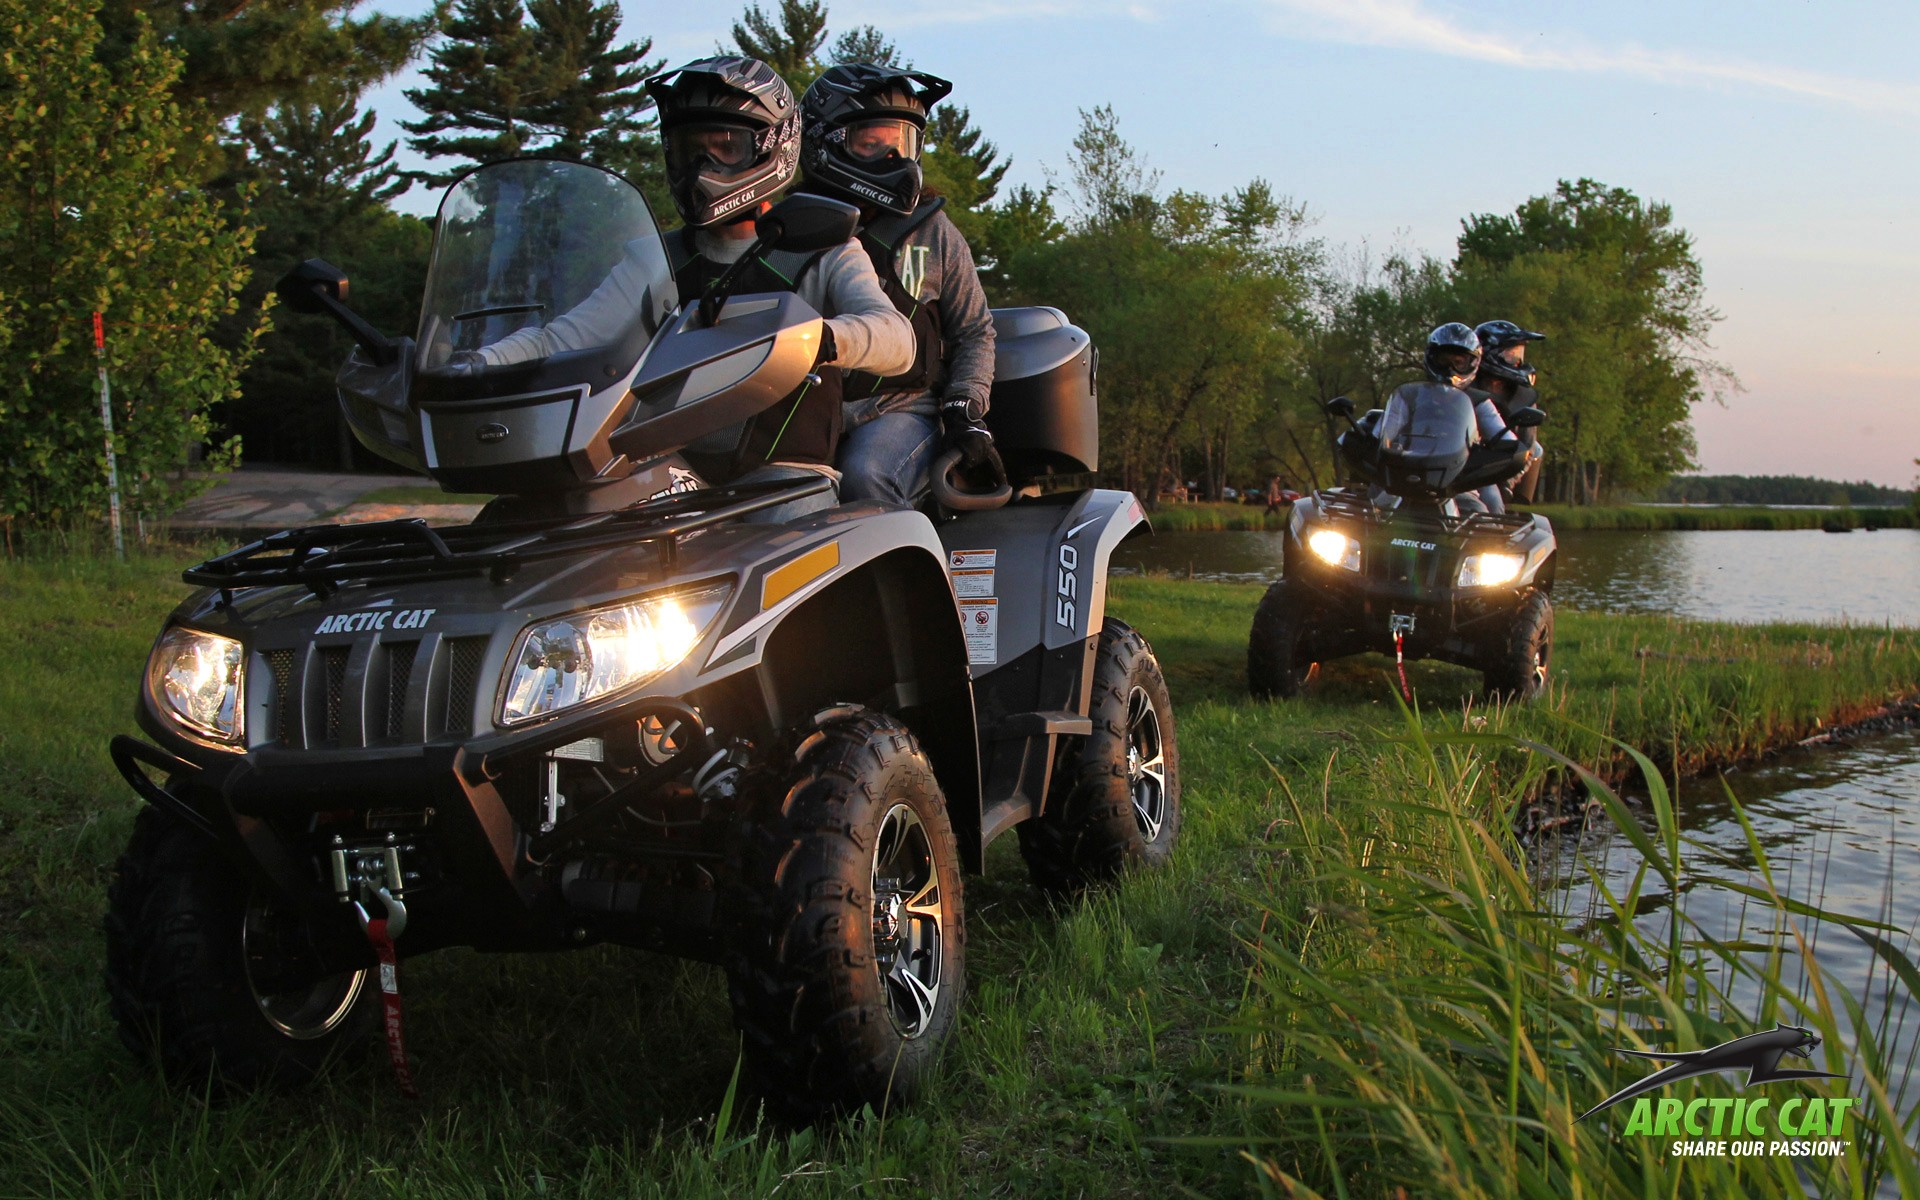 2013 Arctic Cat TRV 550 LTD, the Middleweight Displacement ...